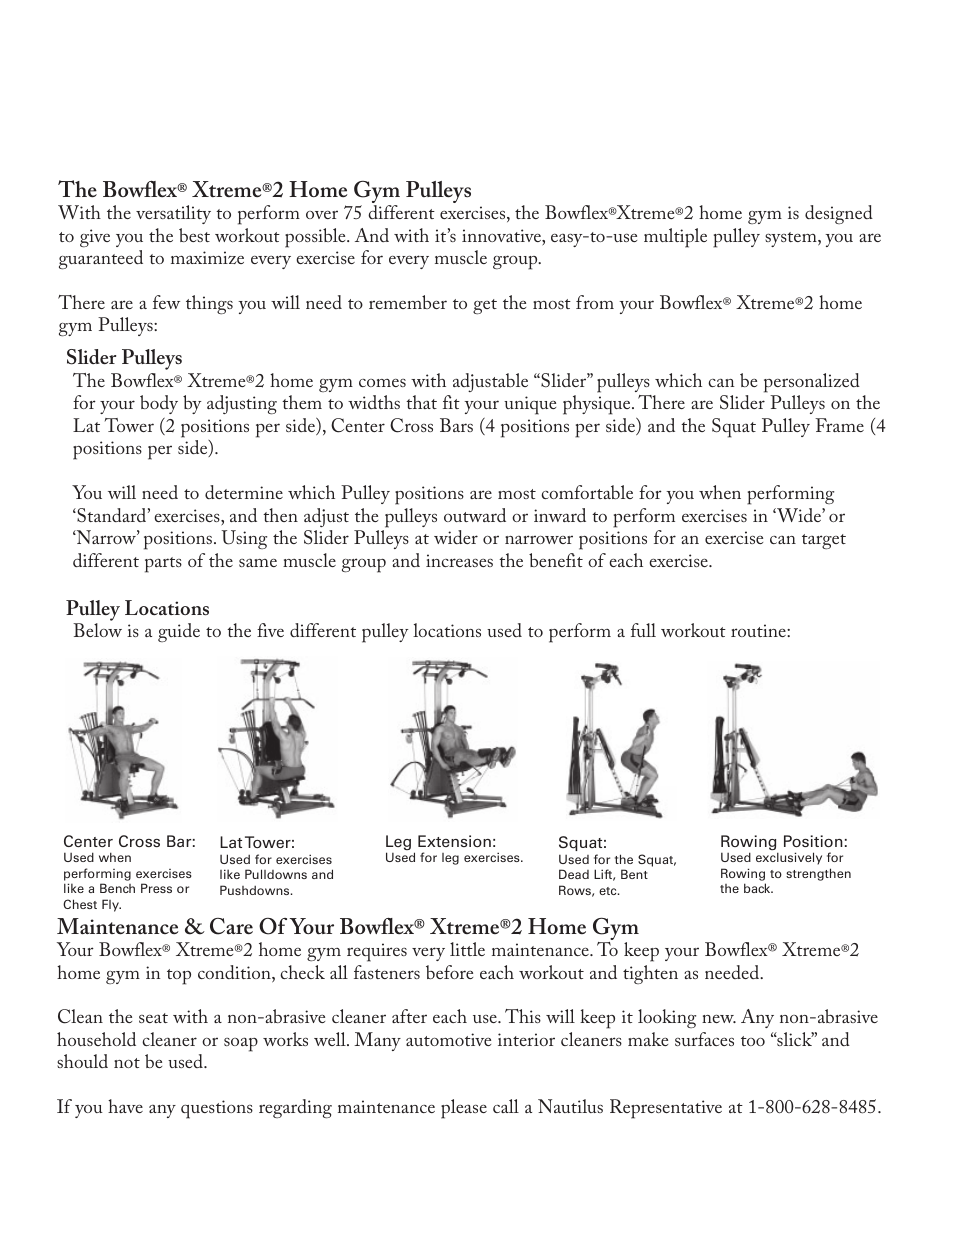 bowflex xtreme 2 home gym manual